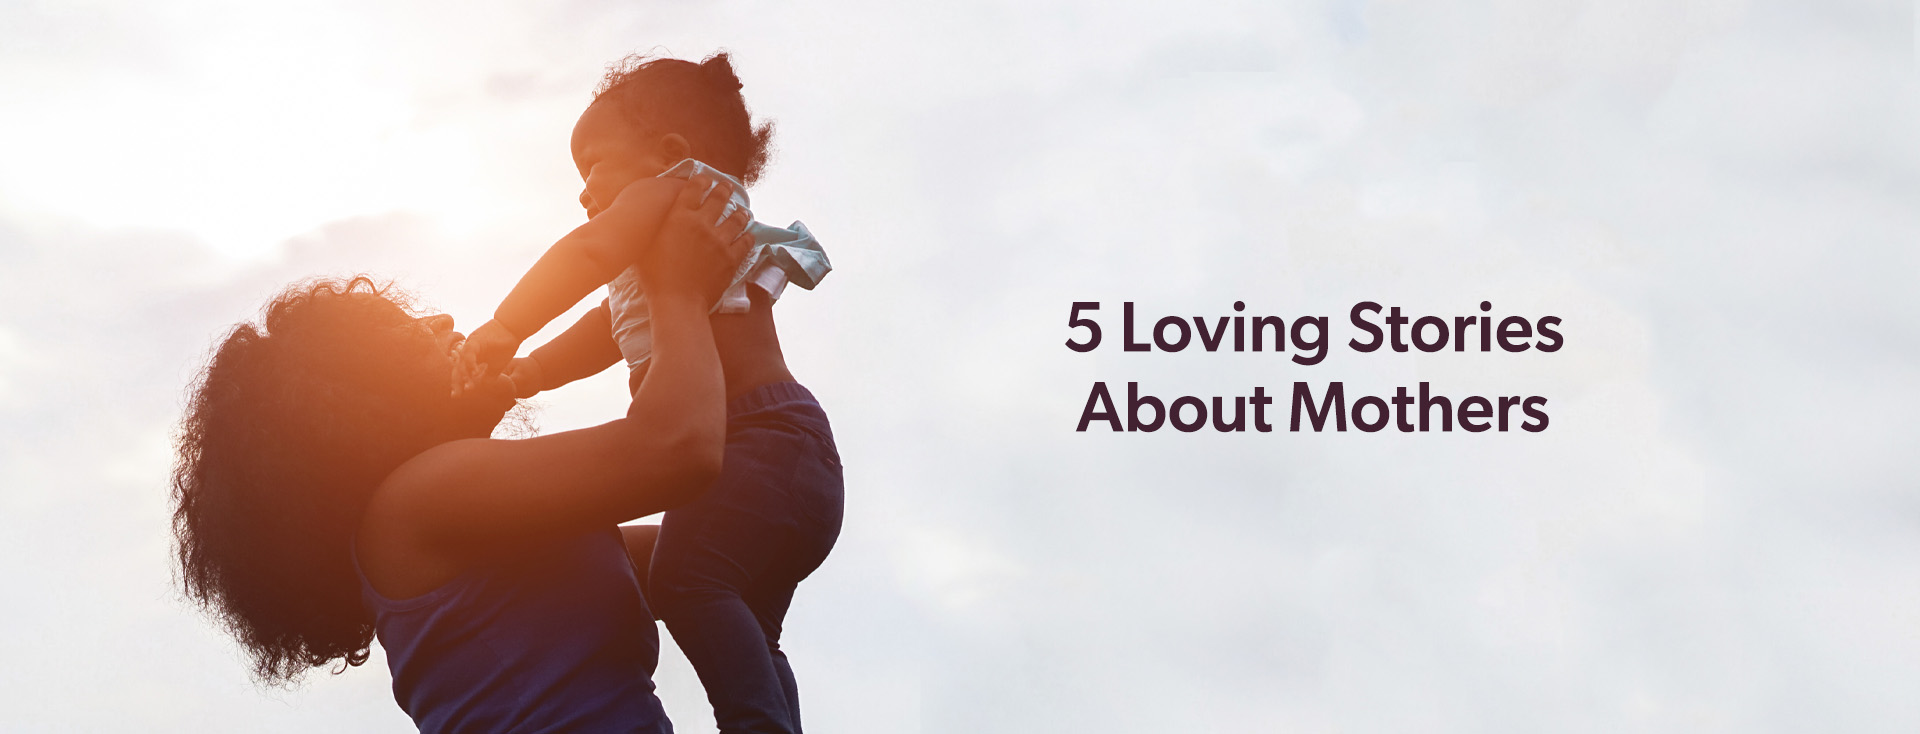 5 Loving Stories About Moms